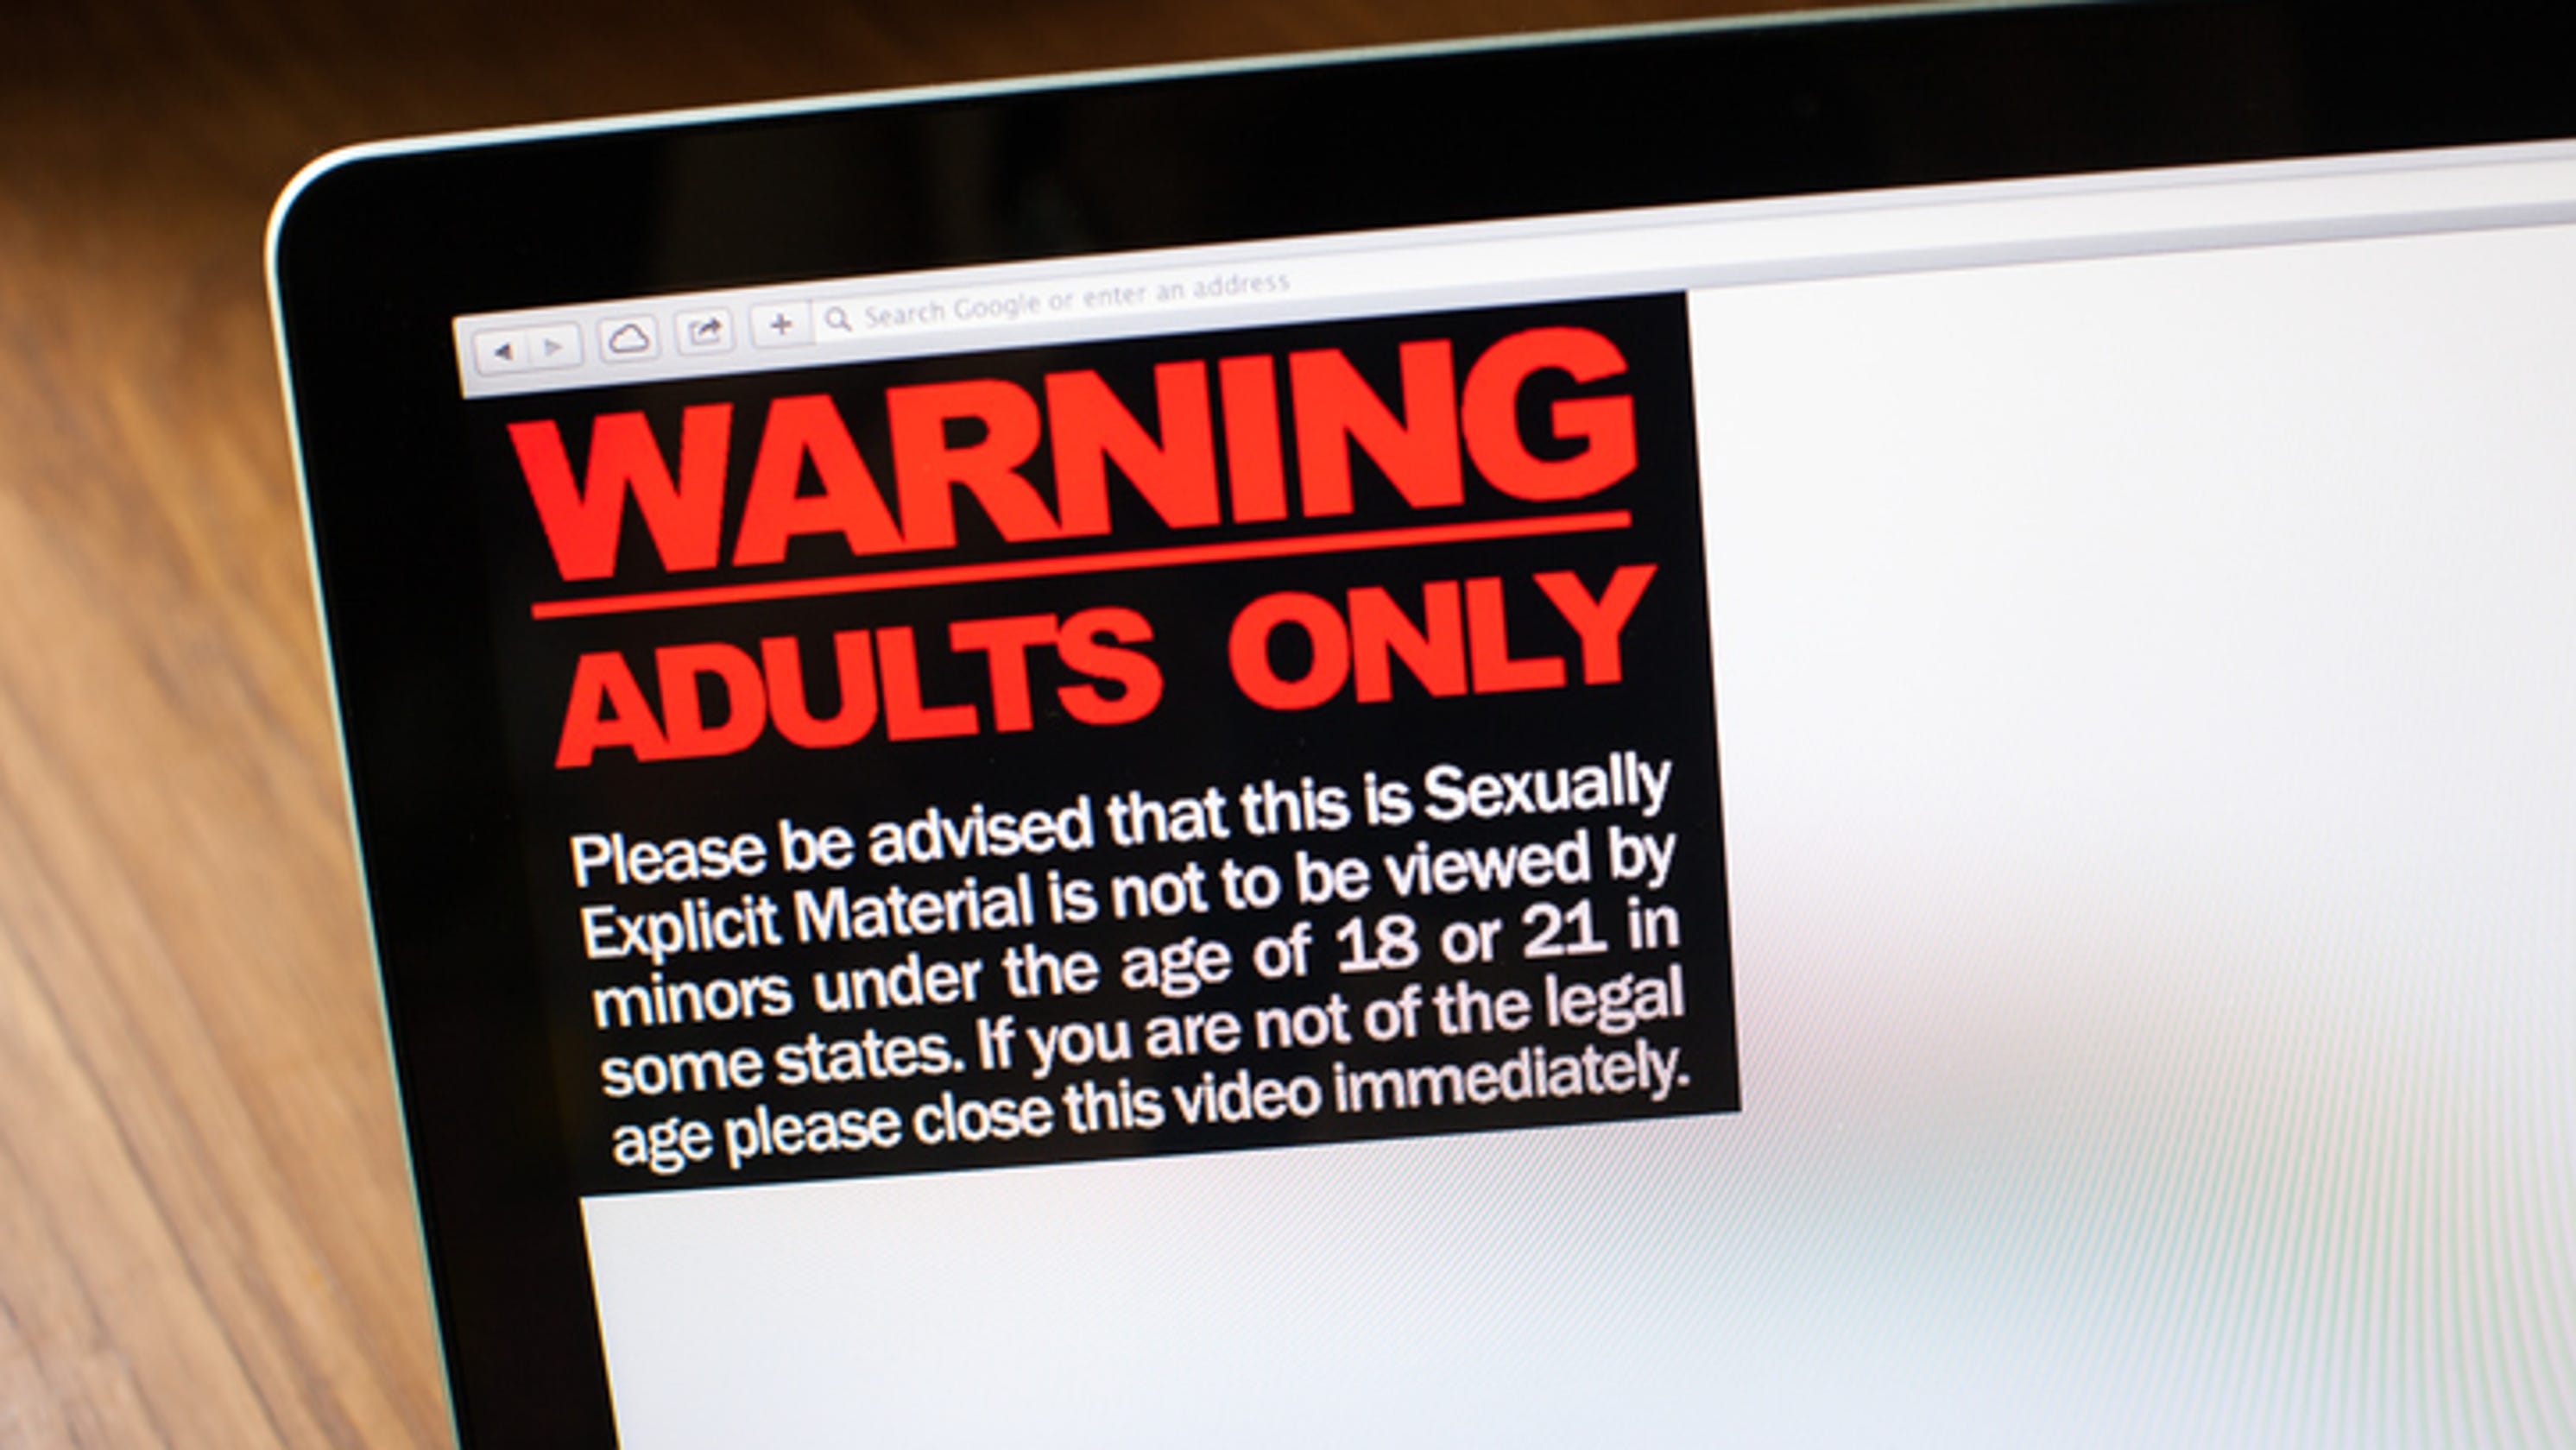 Porn email scam: Email threatens to expose porn habits